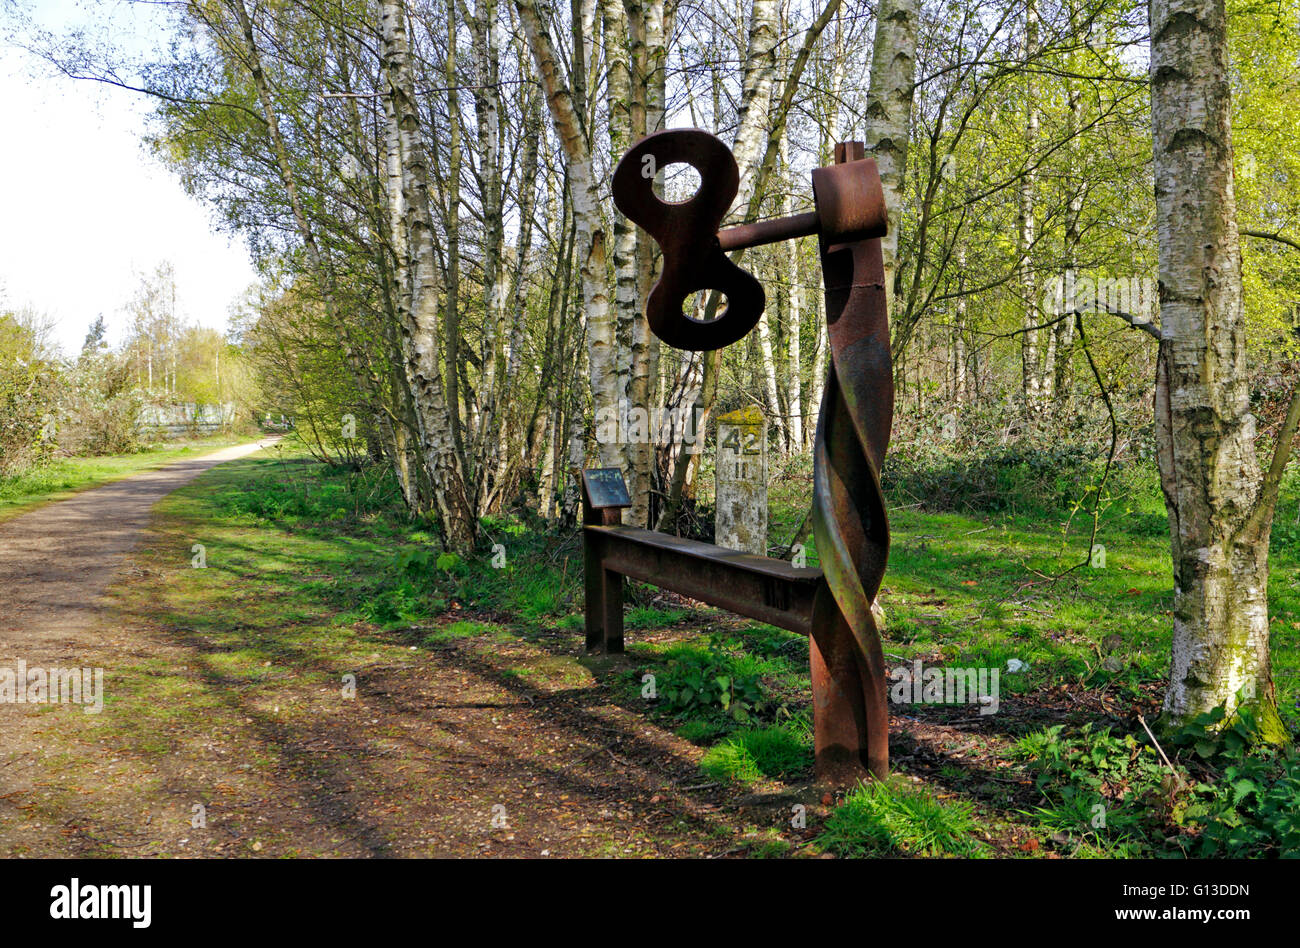 A view of Marriott's Way long distance footpath and cycle way at Lenwade, Norfolk, England, United Kingdom. - Stock Image